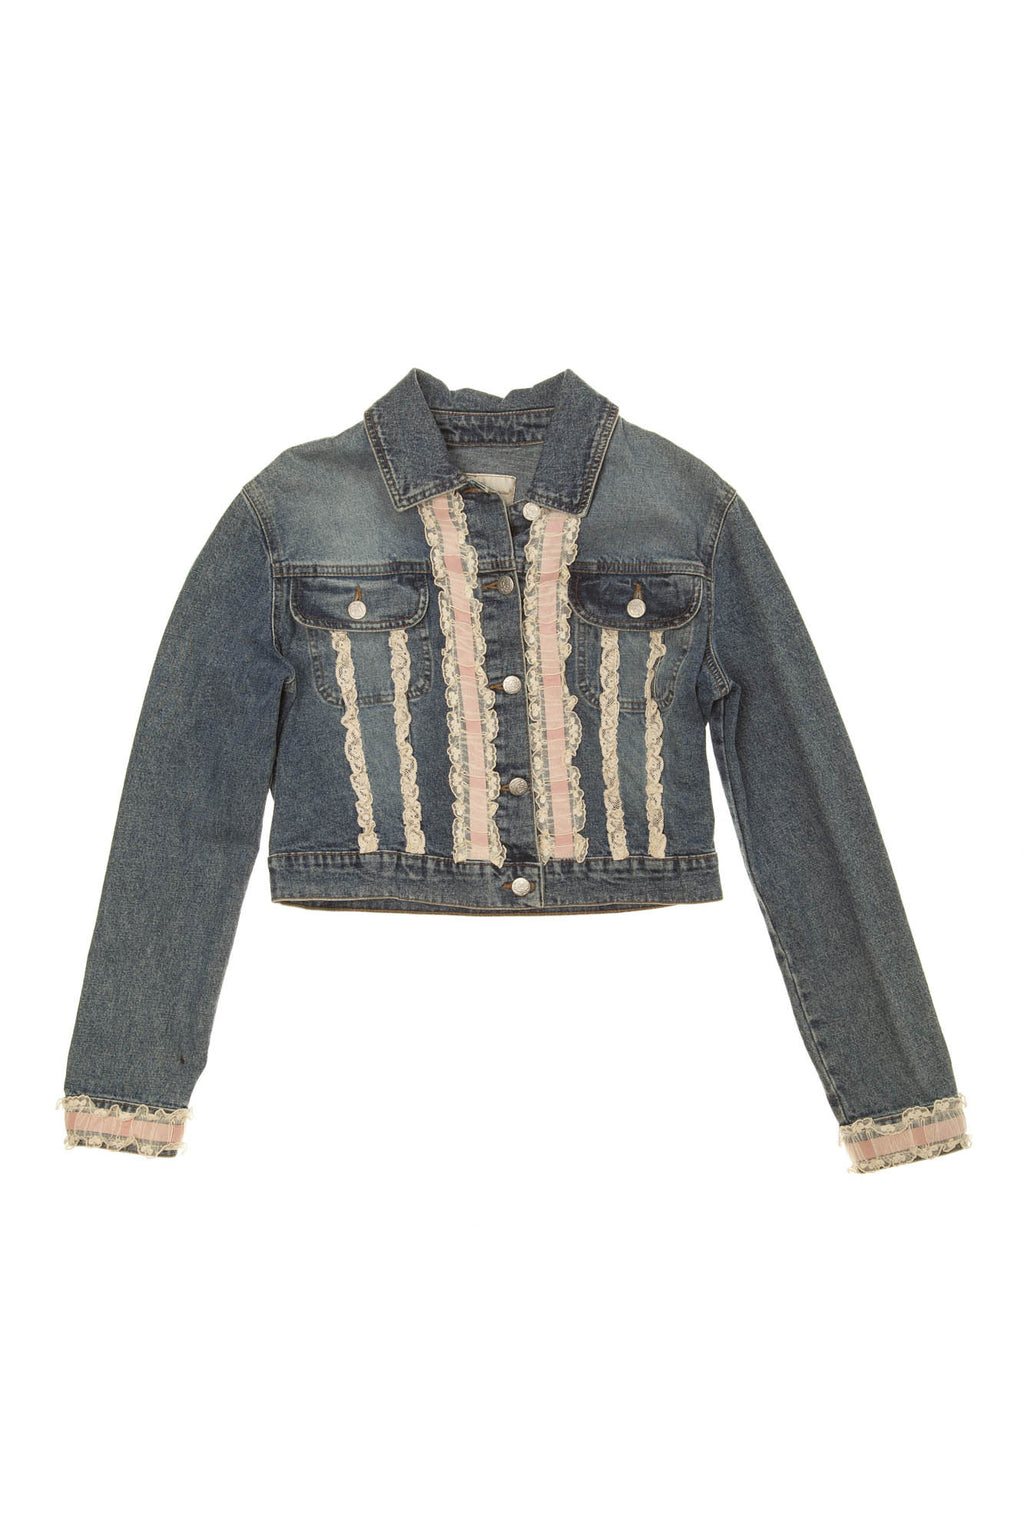 Blumarine - Blue Jean Jacket with Lace - IT 40